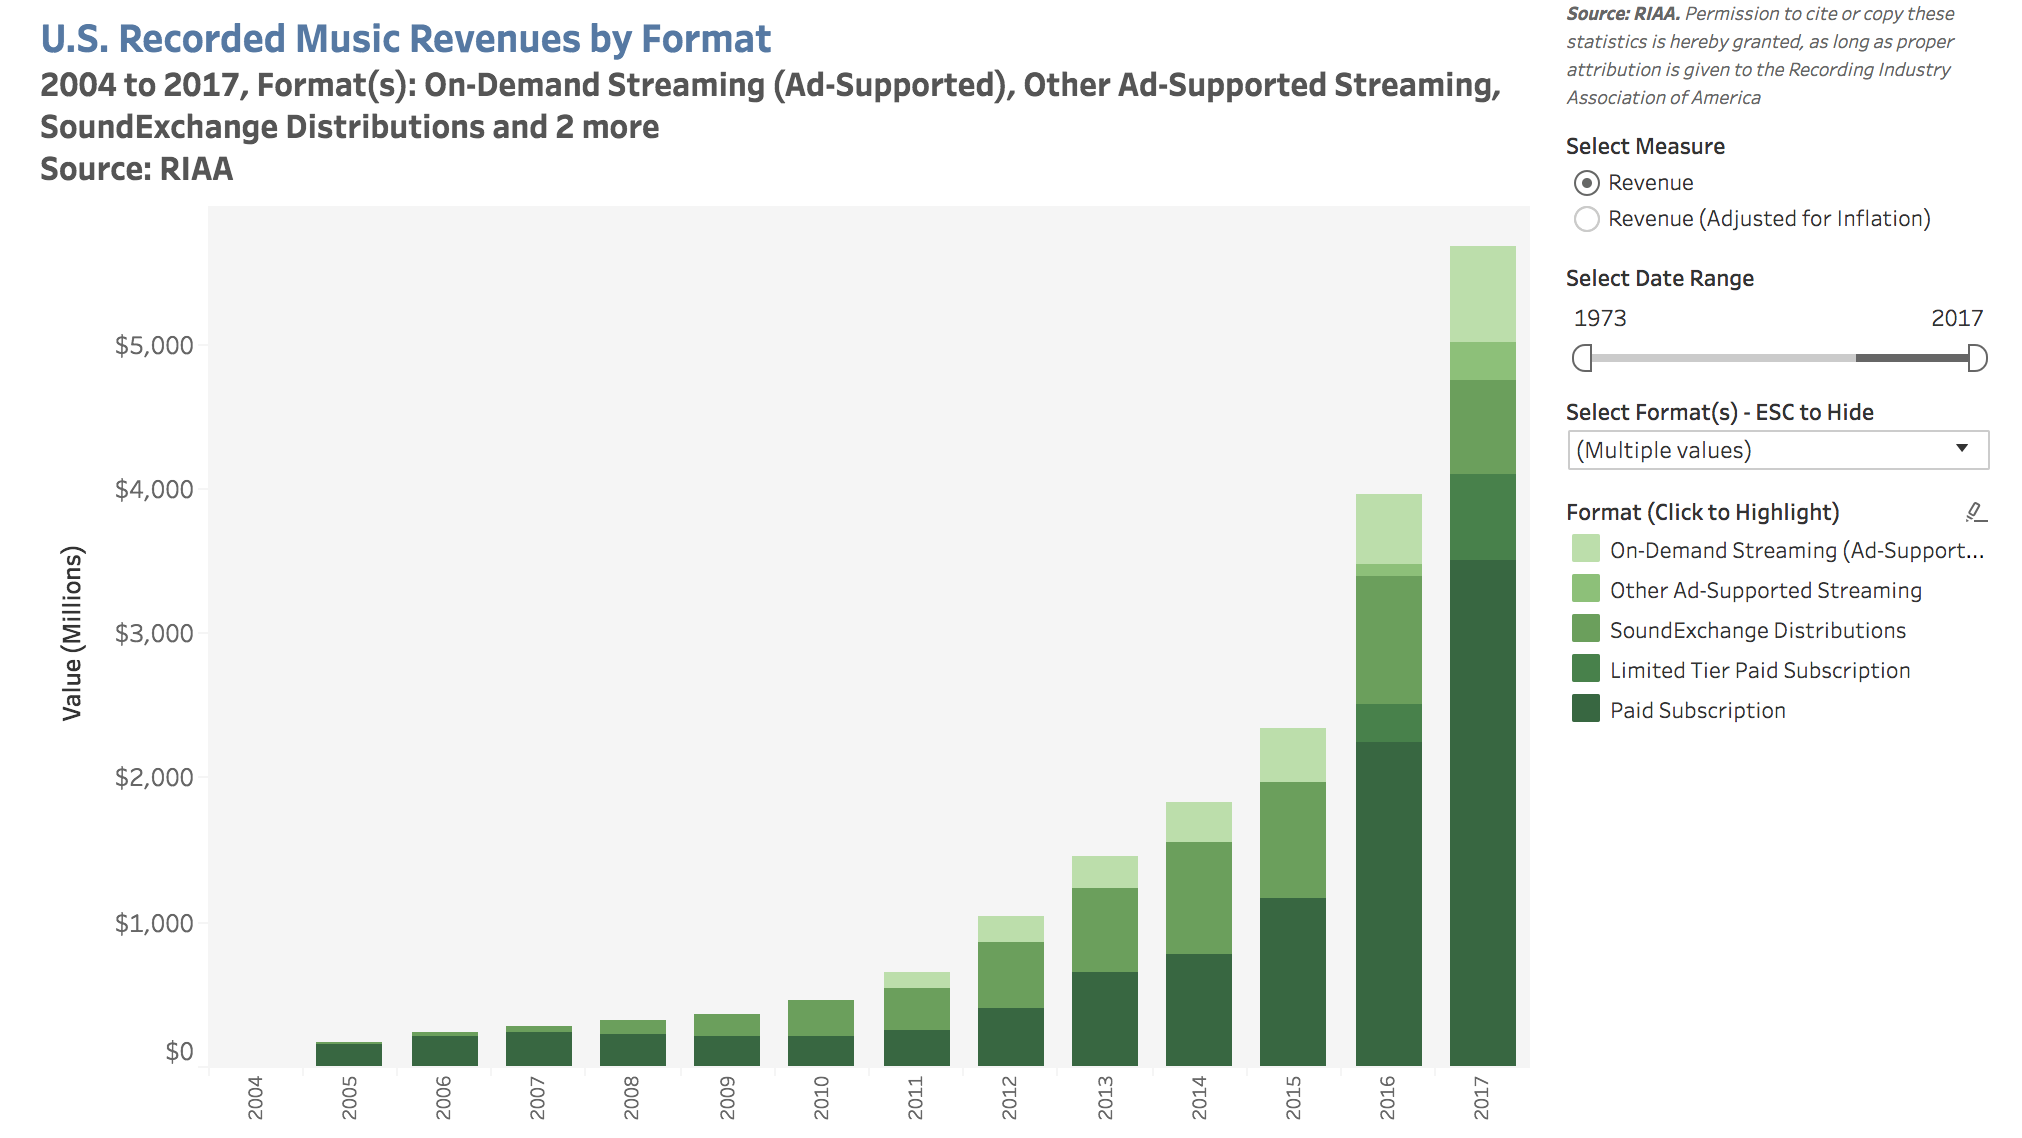 2017 Music Streaming Revenues (U.S.)